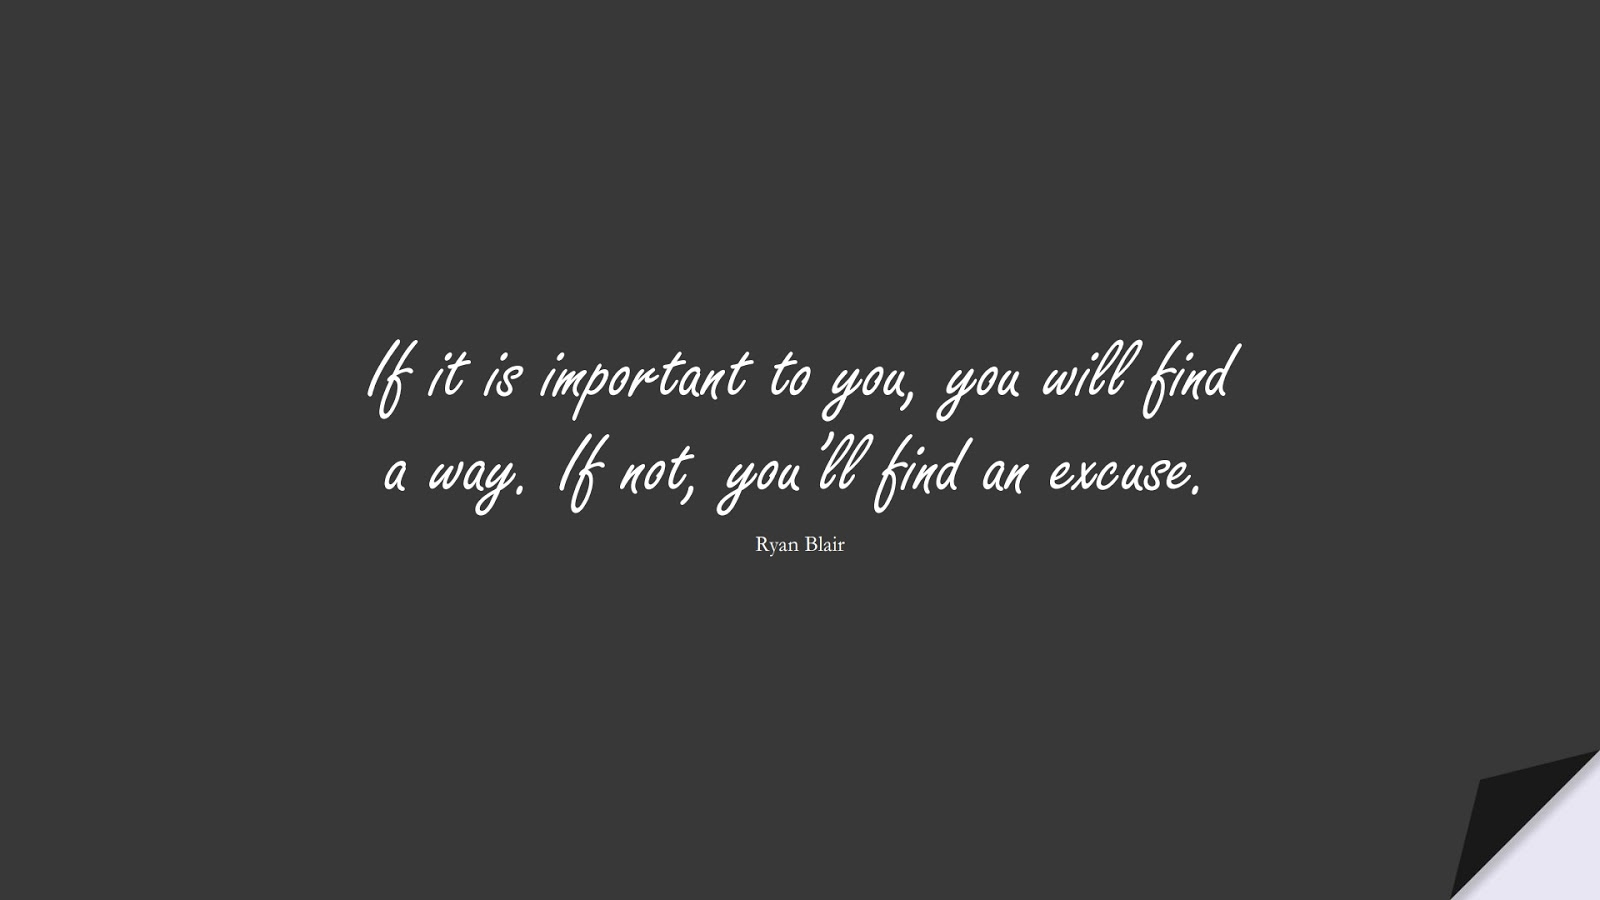 If it is important to you, you will find a way. If not, you'll find an excuse. (Ryan Blair);  #EncouragingQuotes